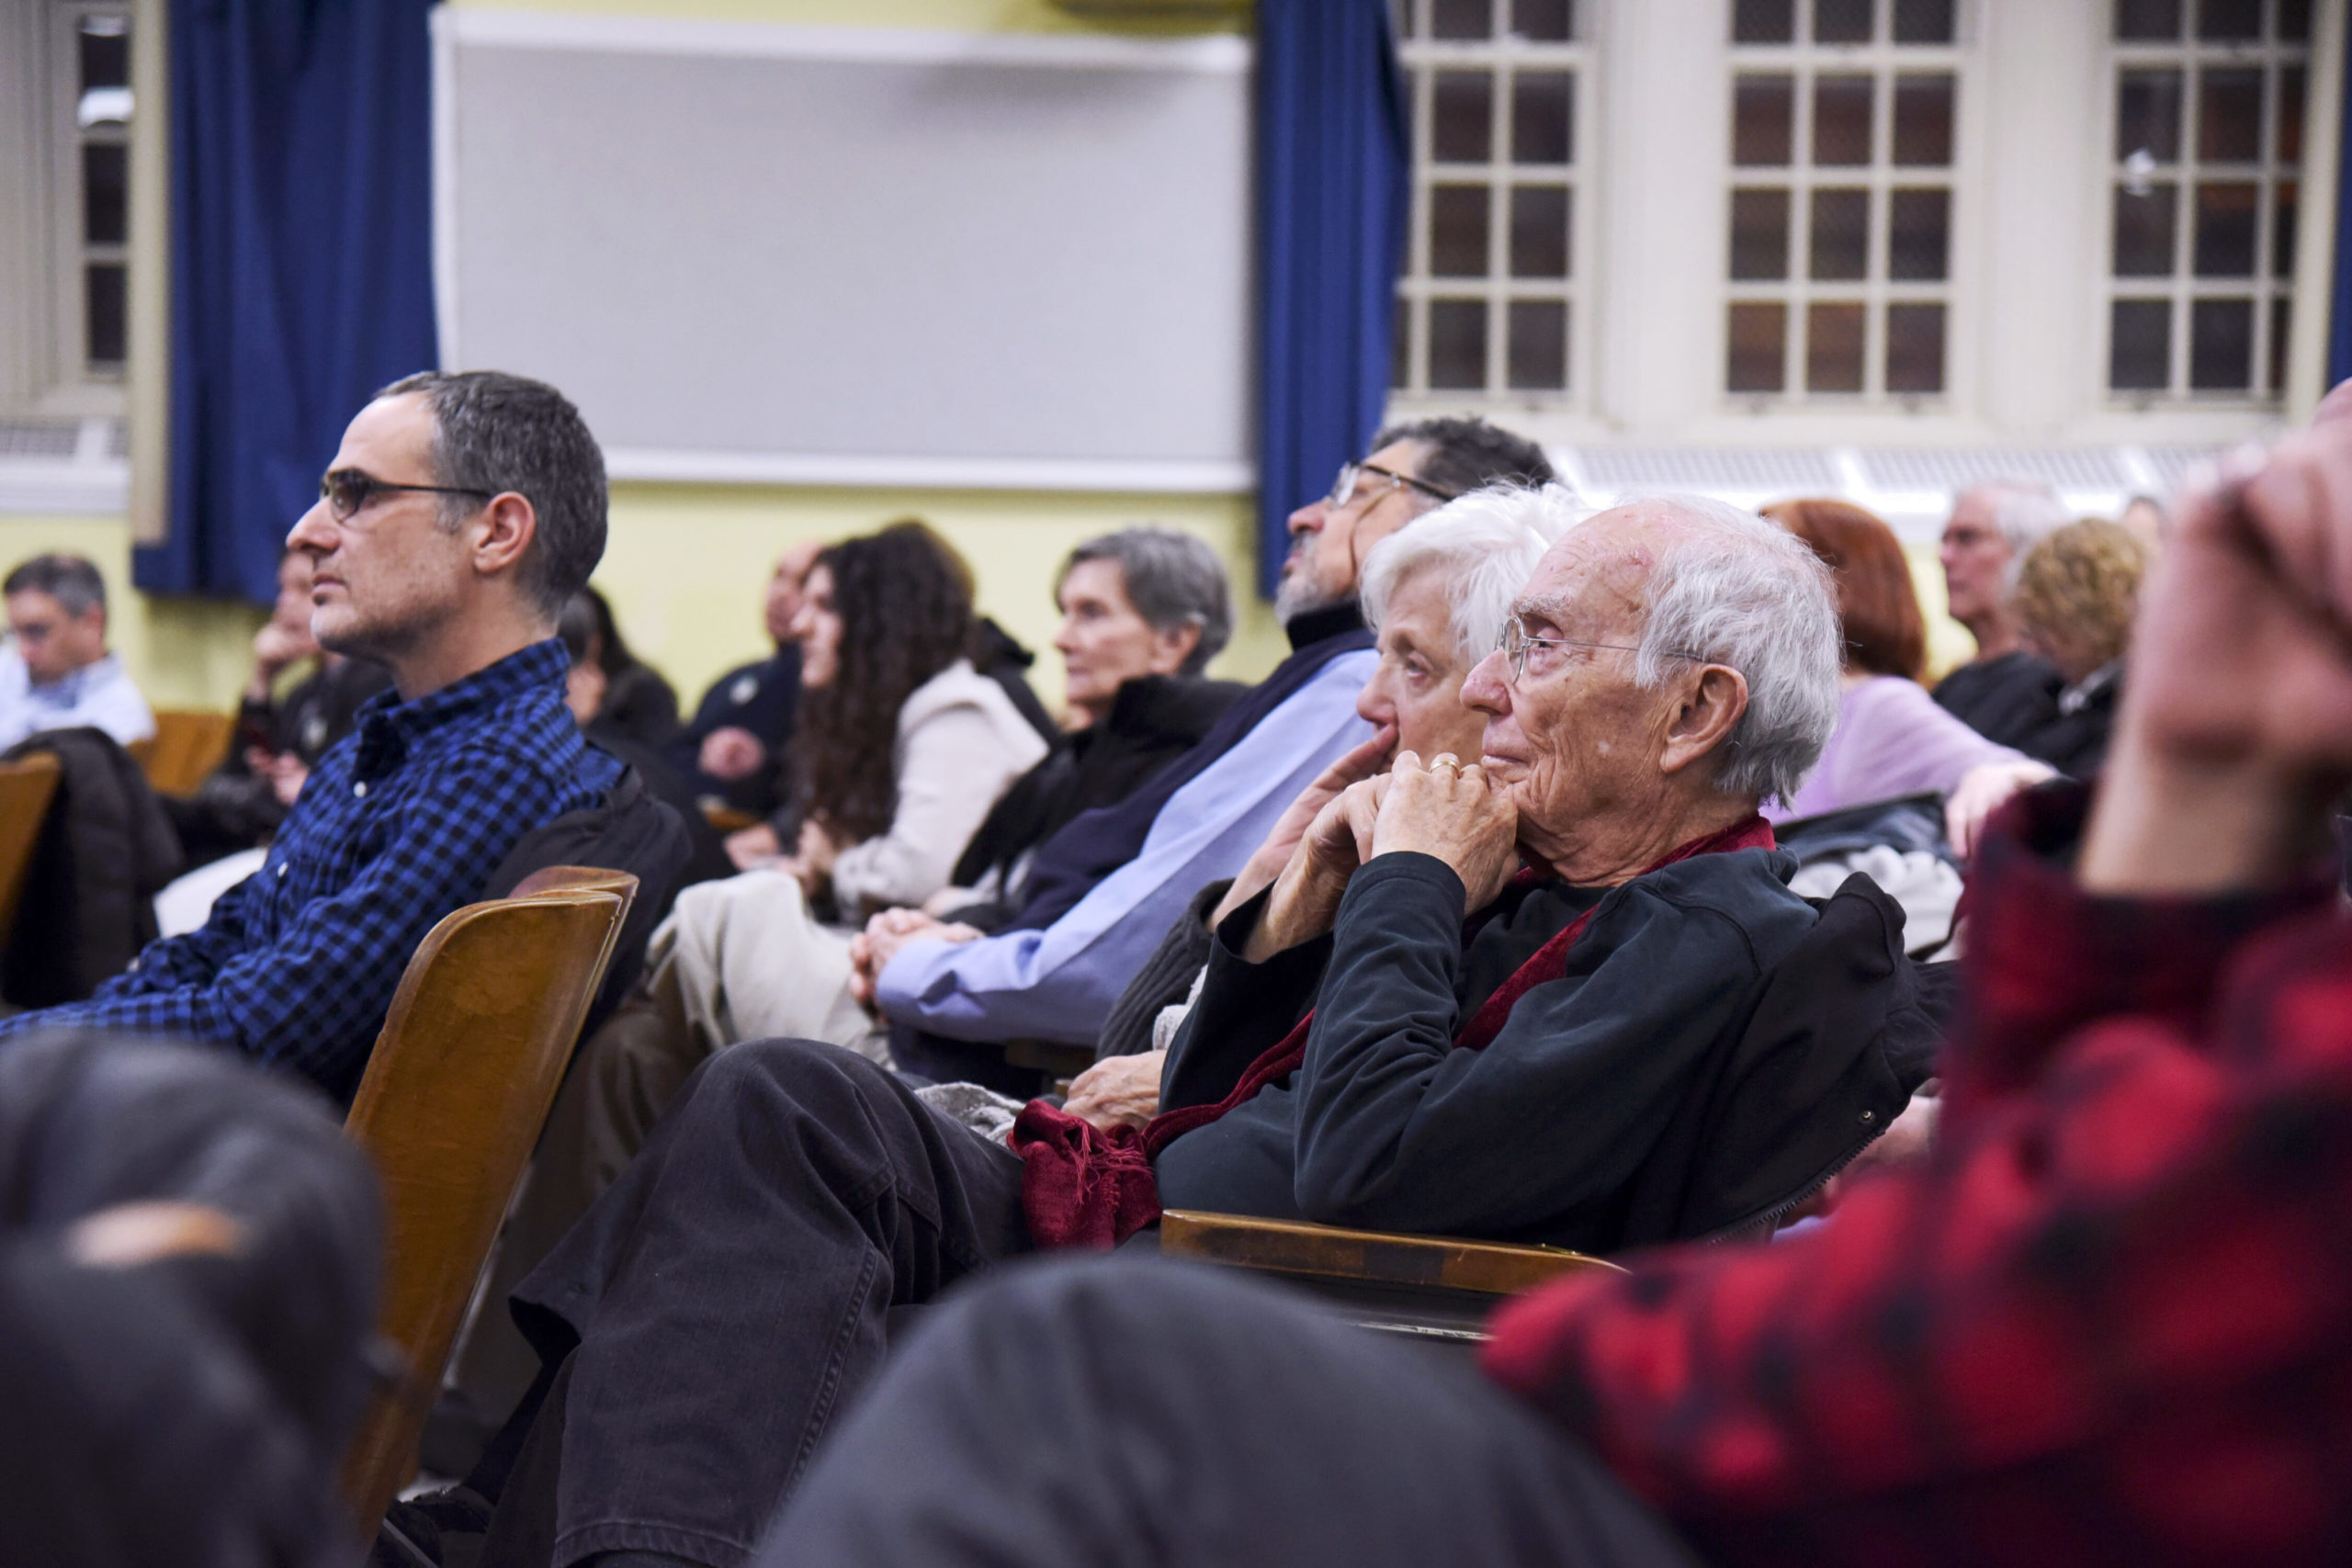 Attendees at the BQE Future Vision town hall organized by the Cobble Hill Association. Photo: Caroline Ourso